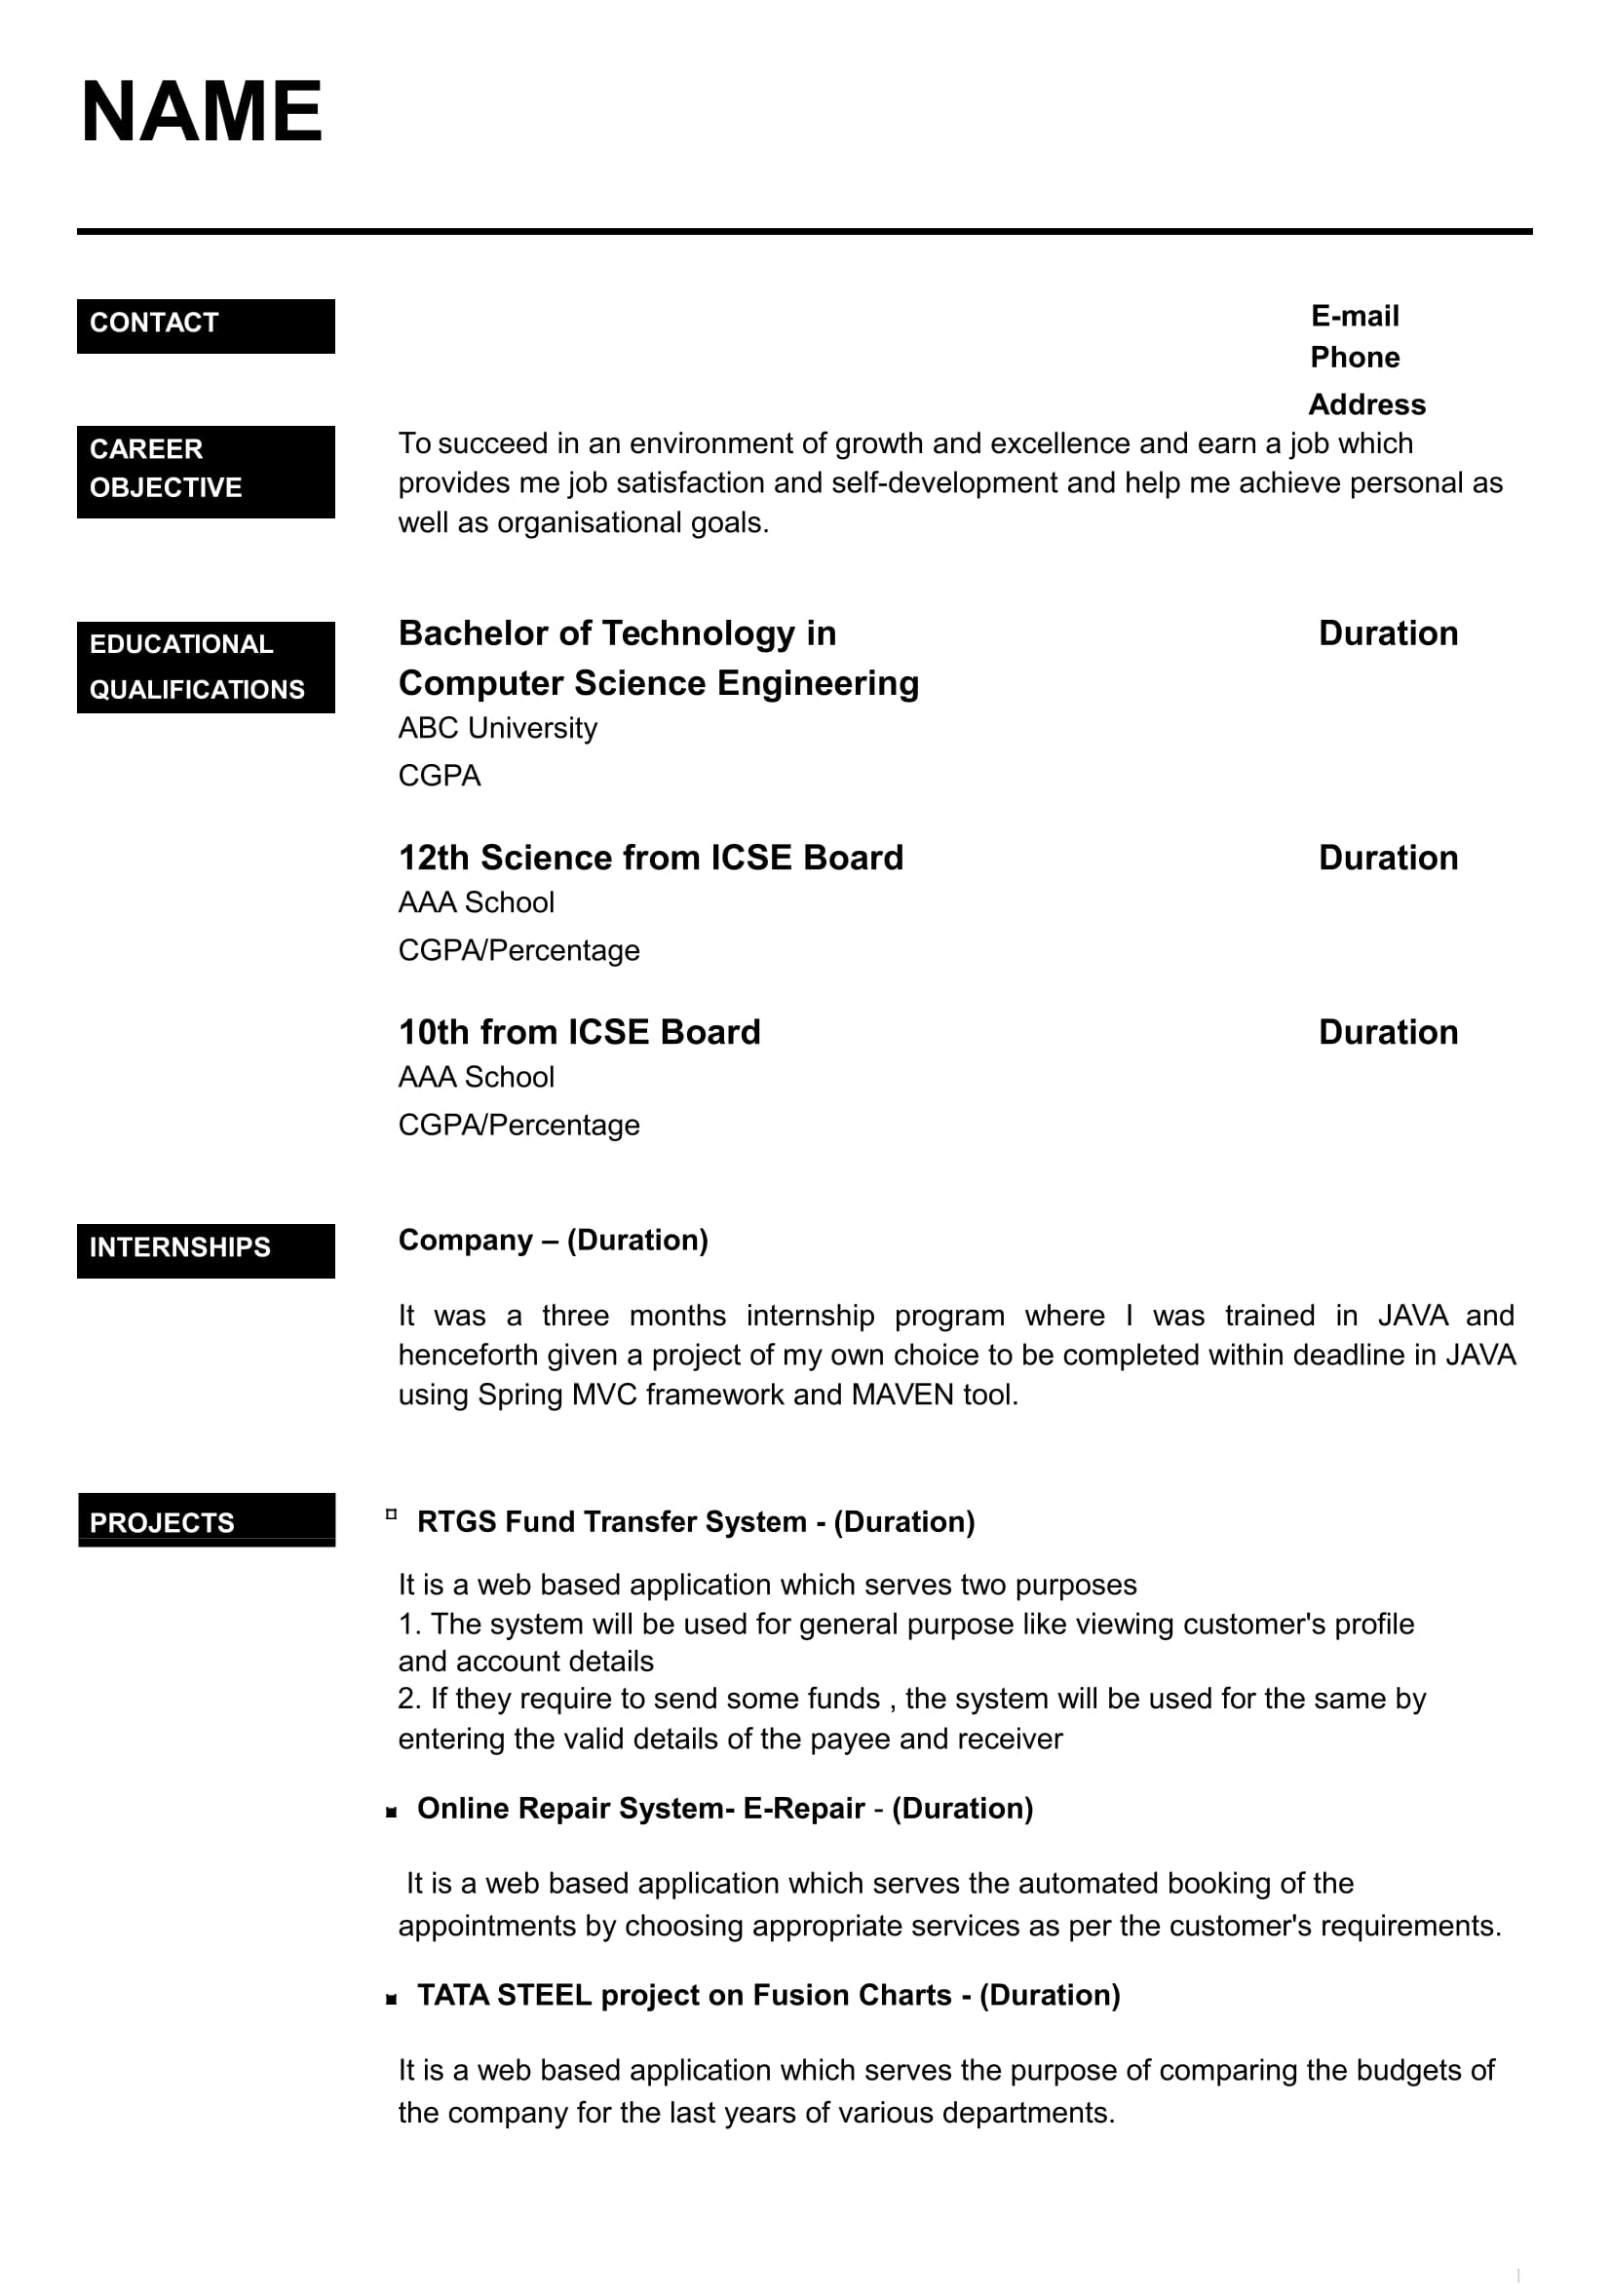 resume format sample for fresher